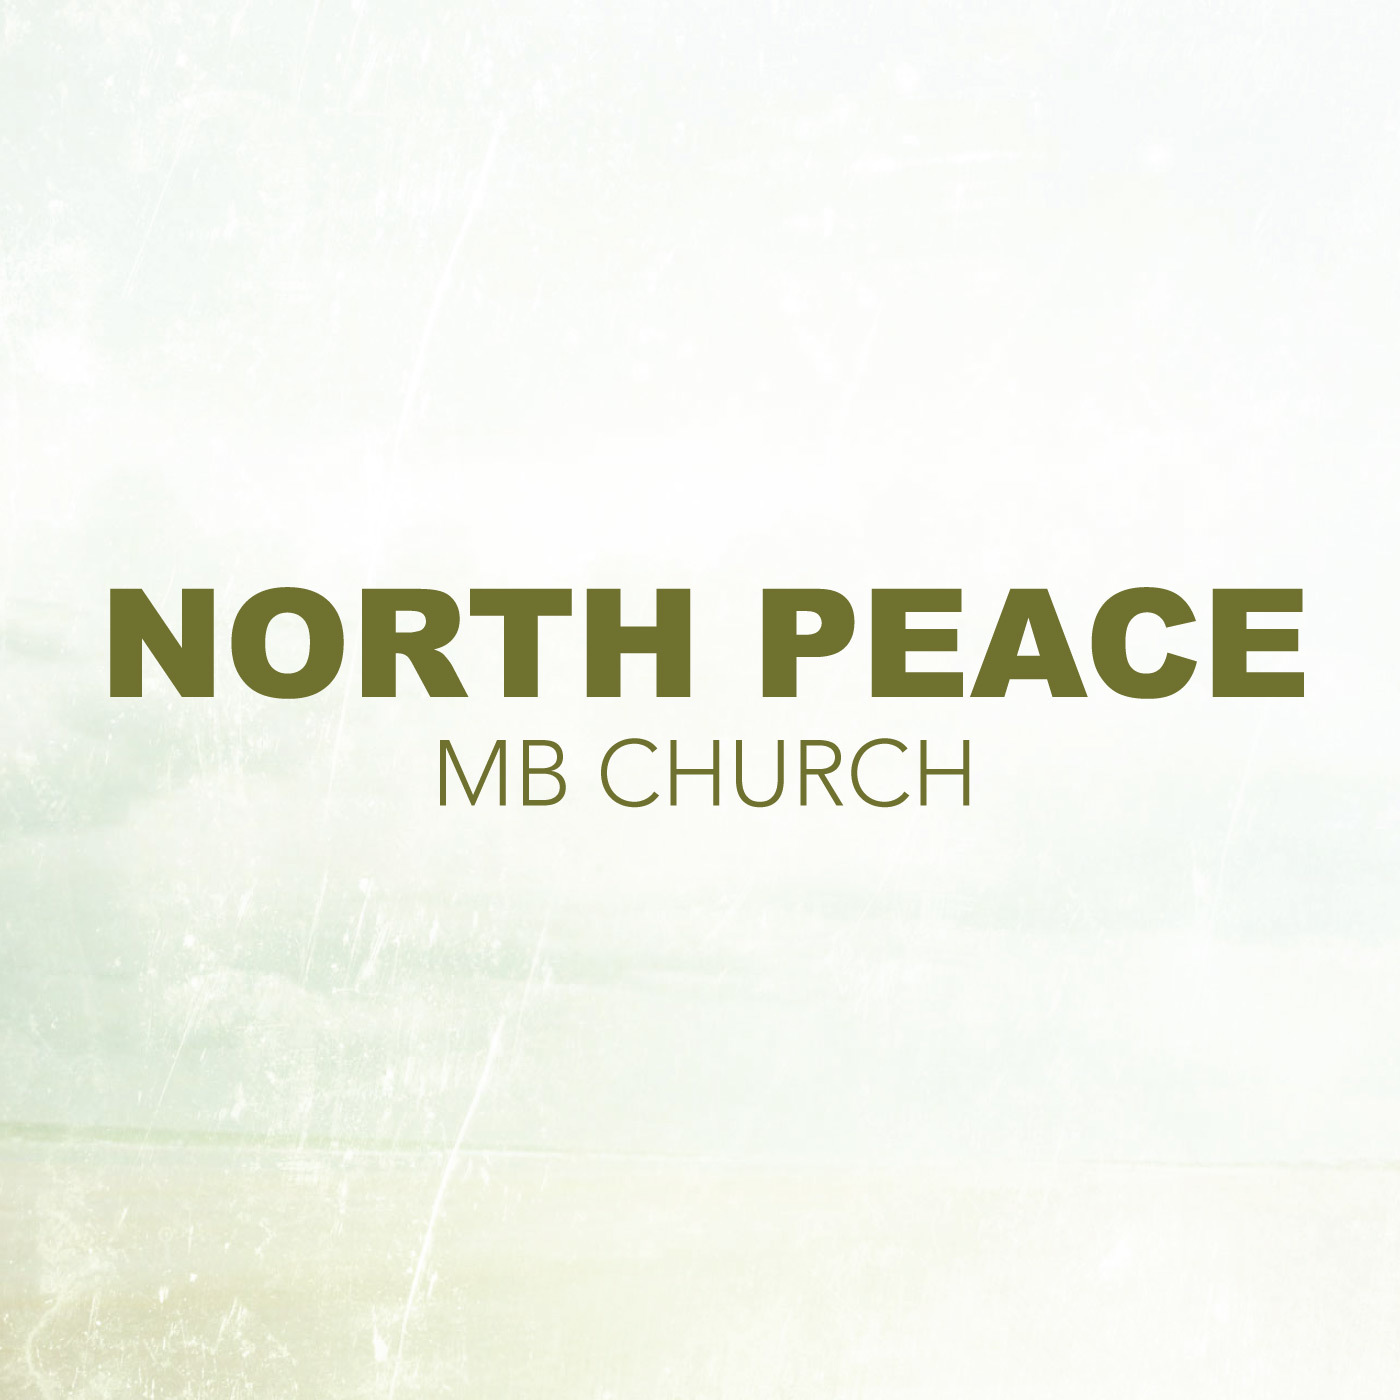 North Peace MB Church